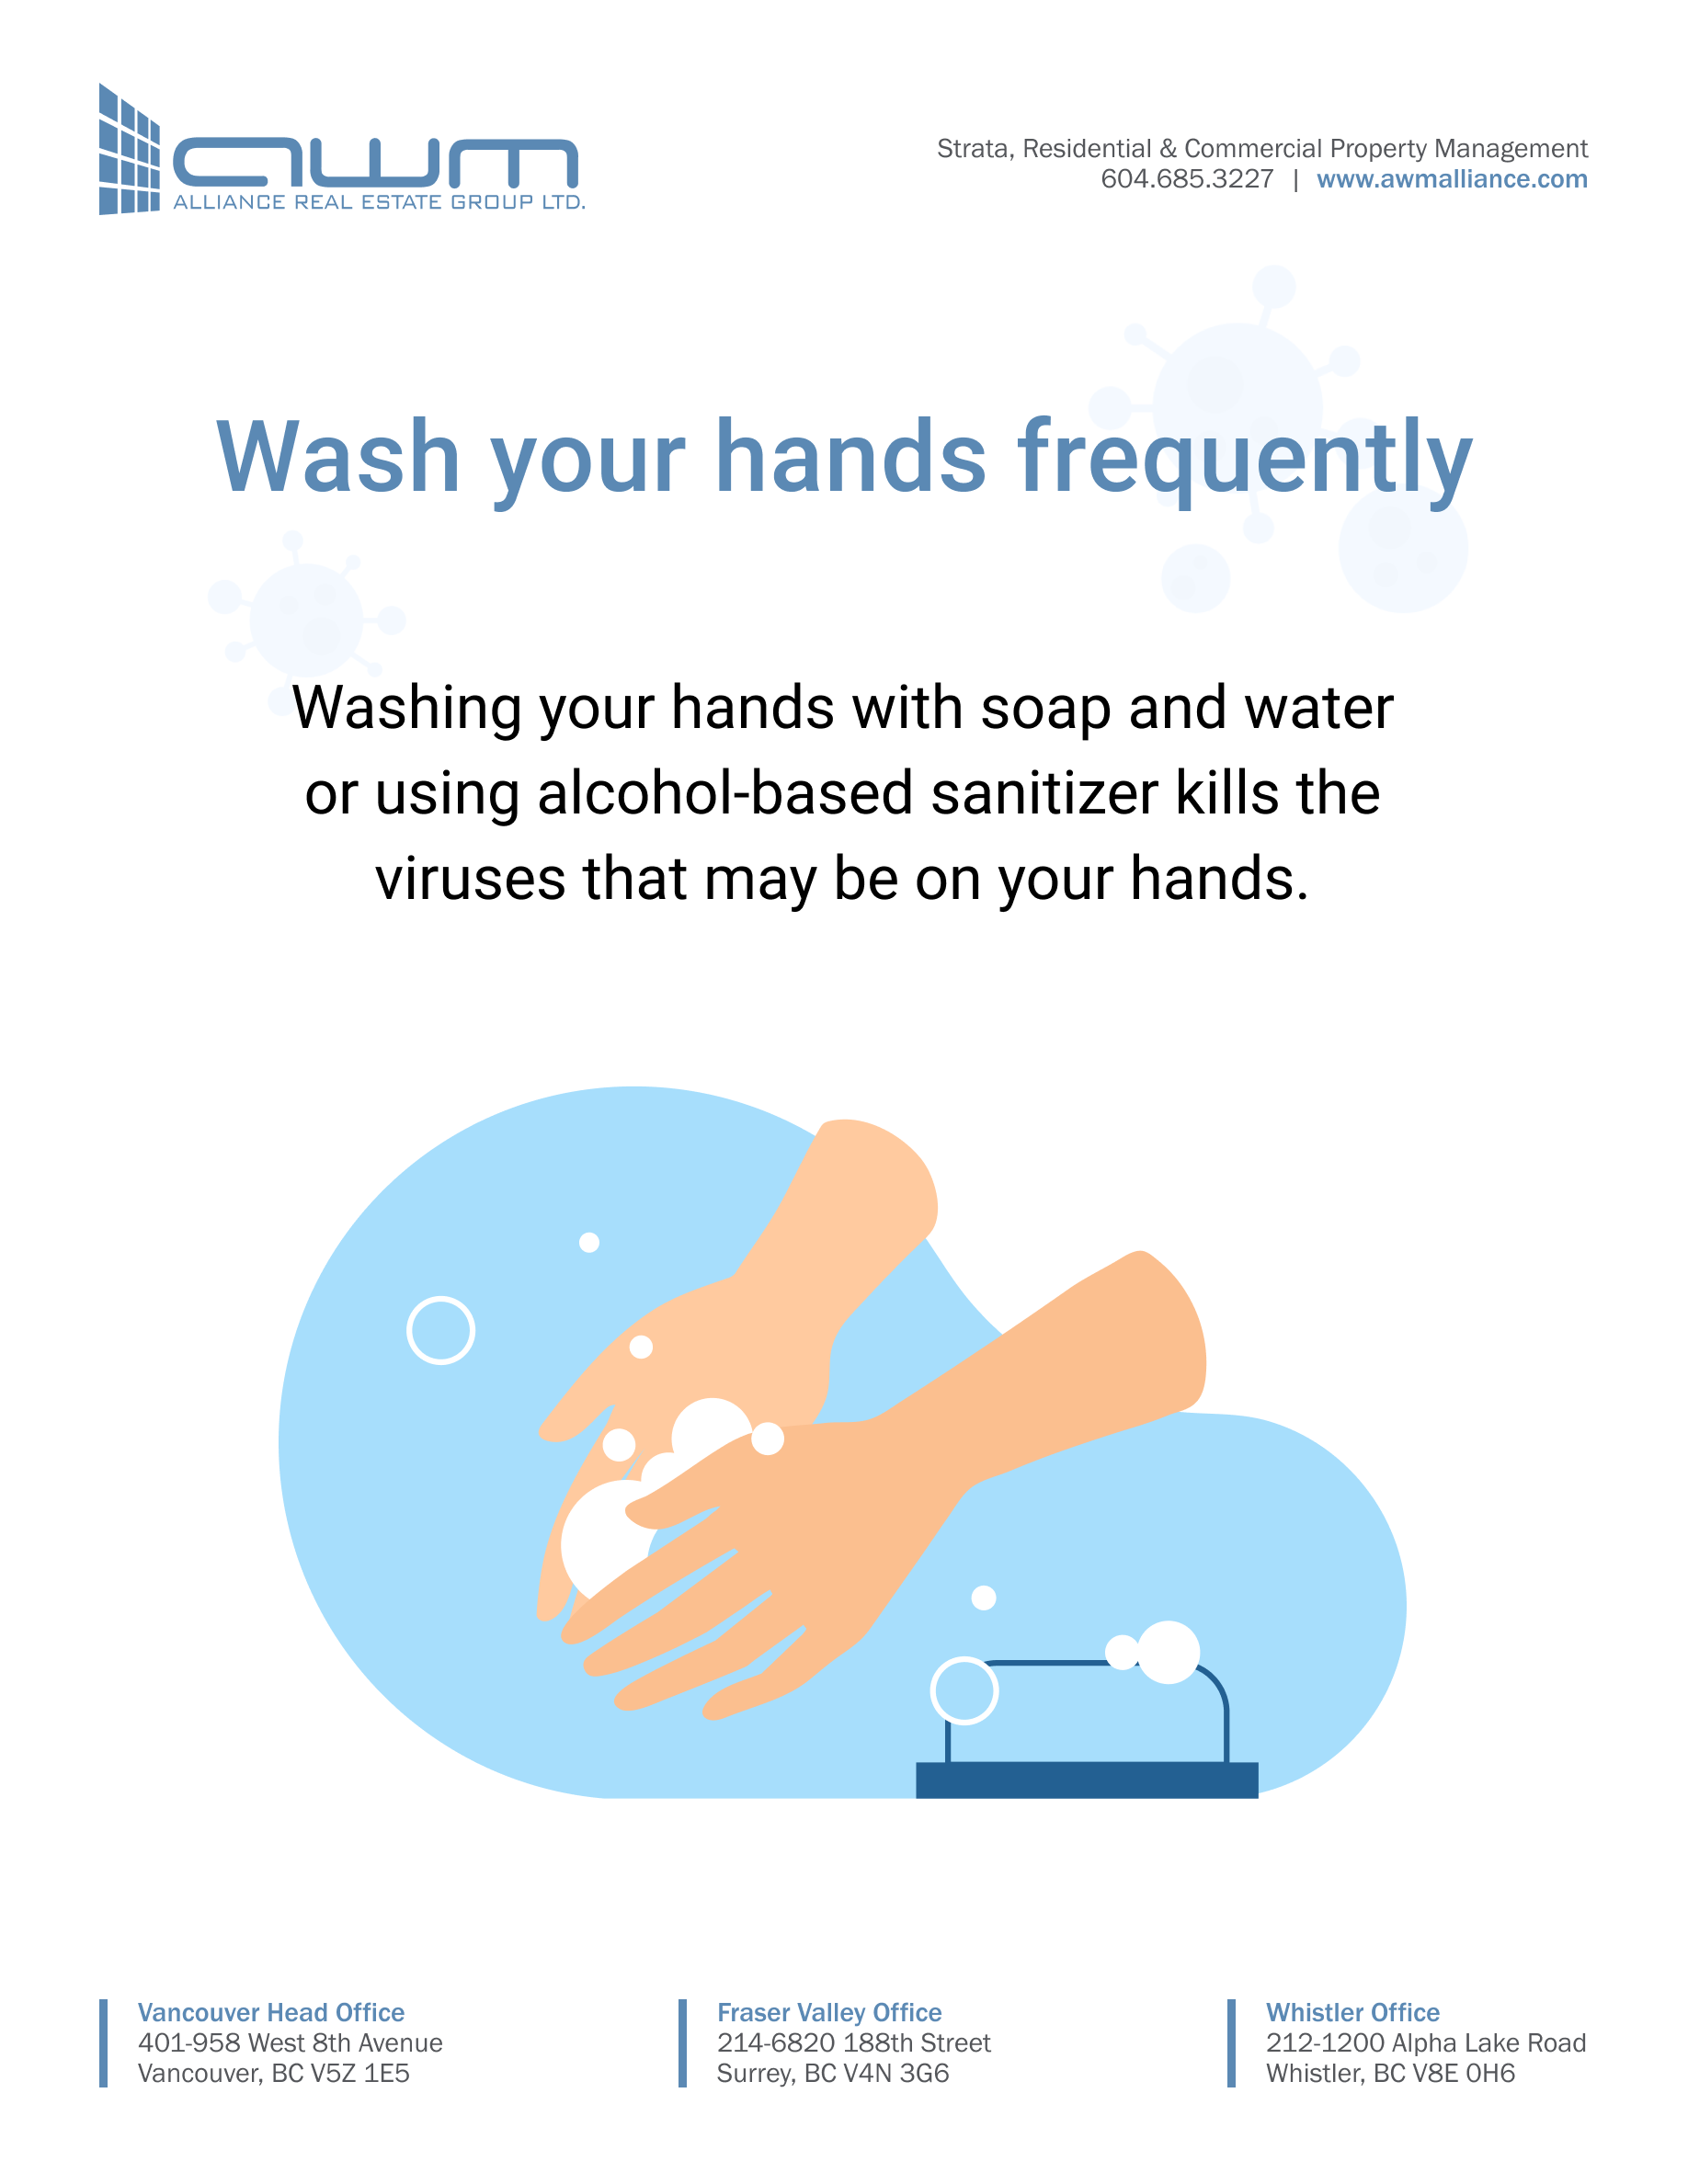 Wash-Hands-Frequently